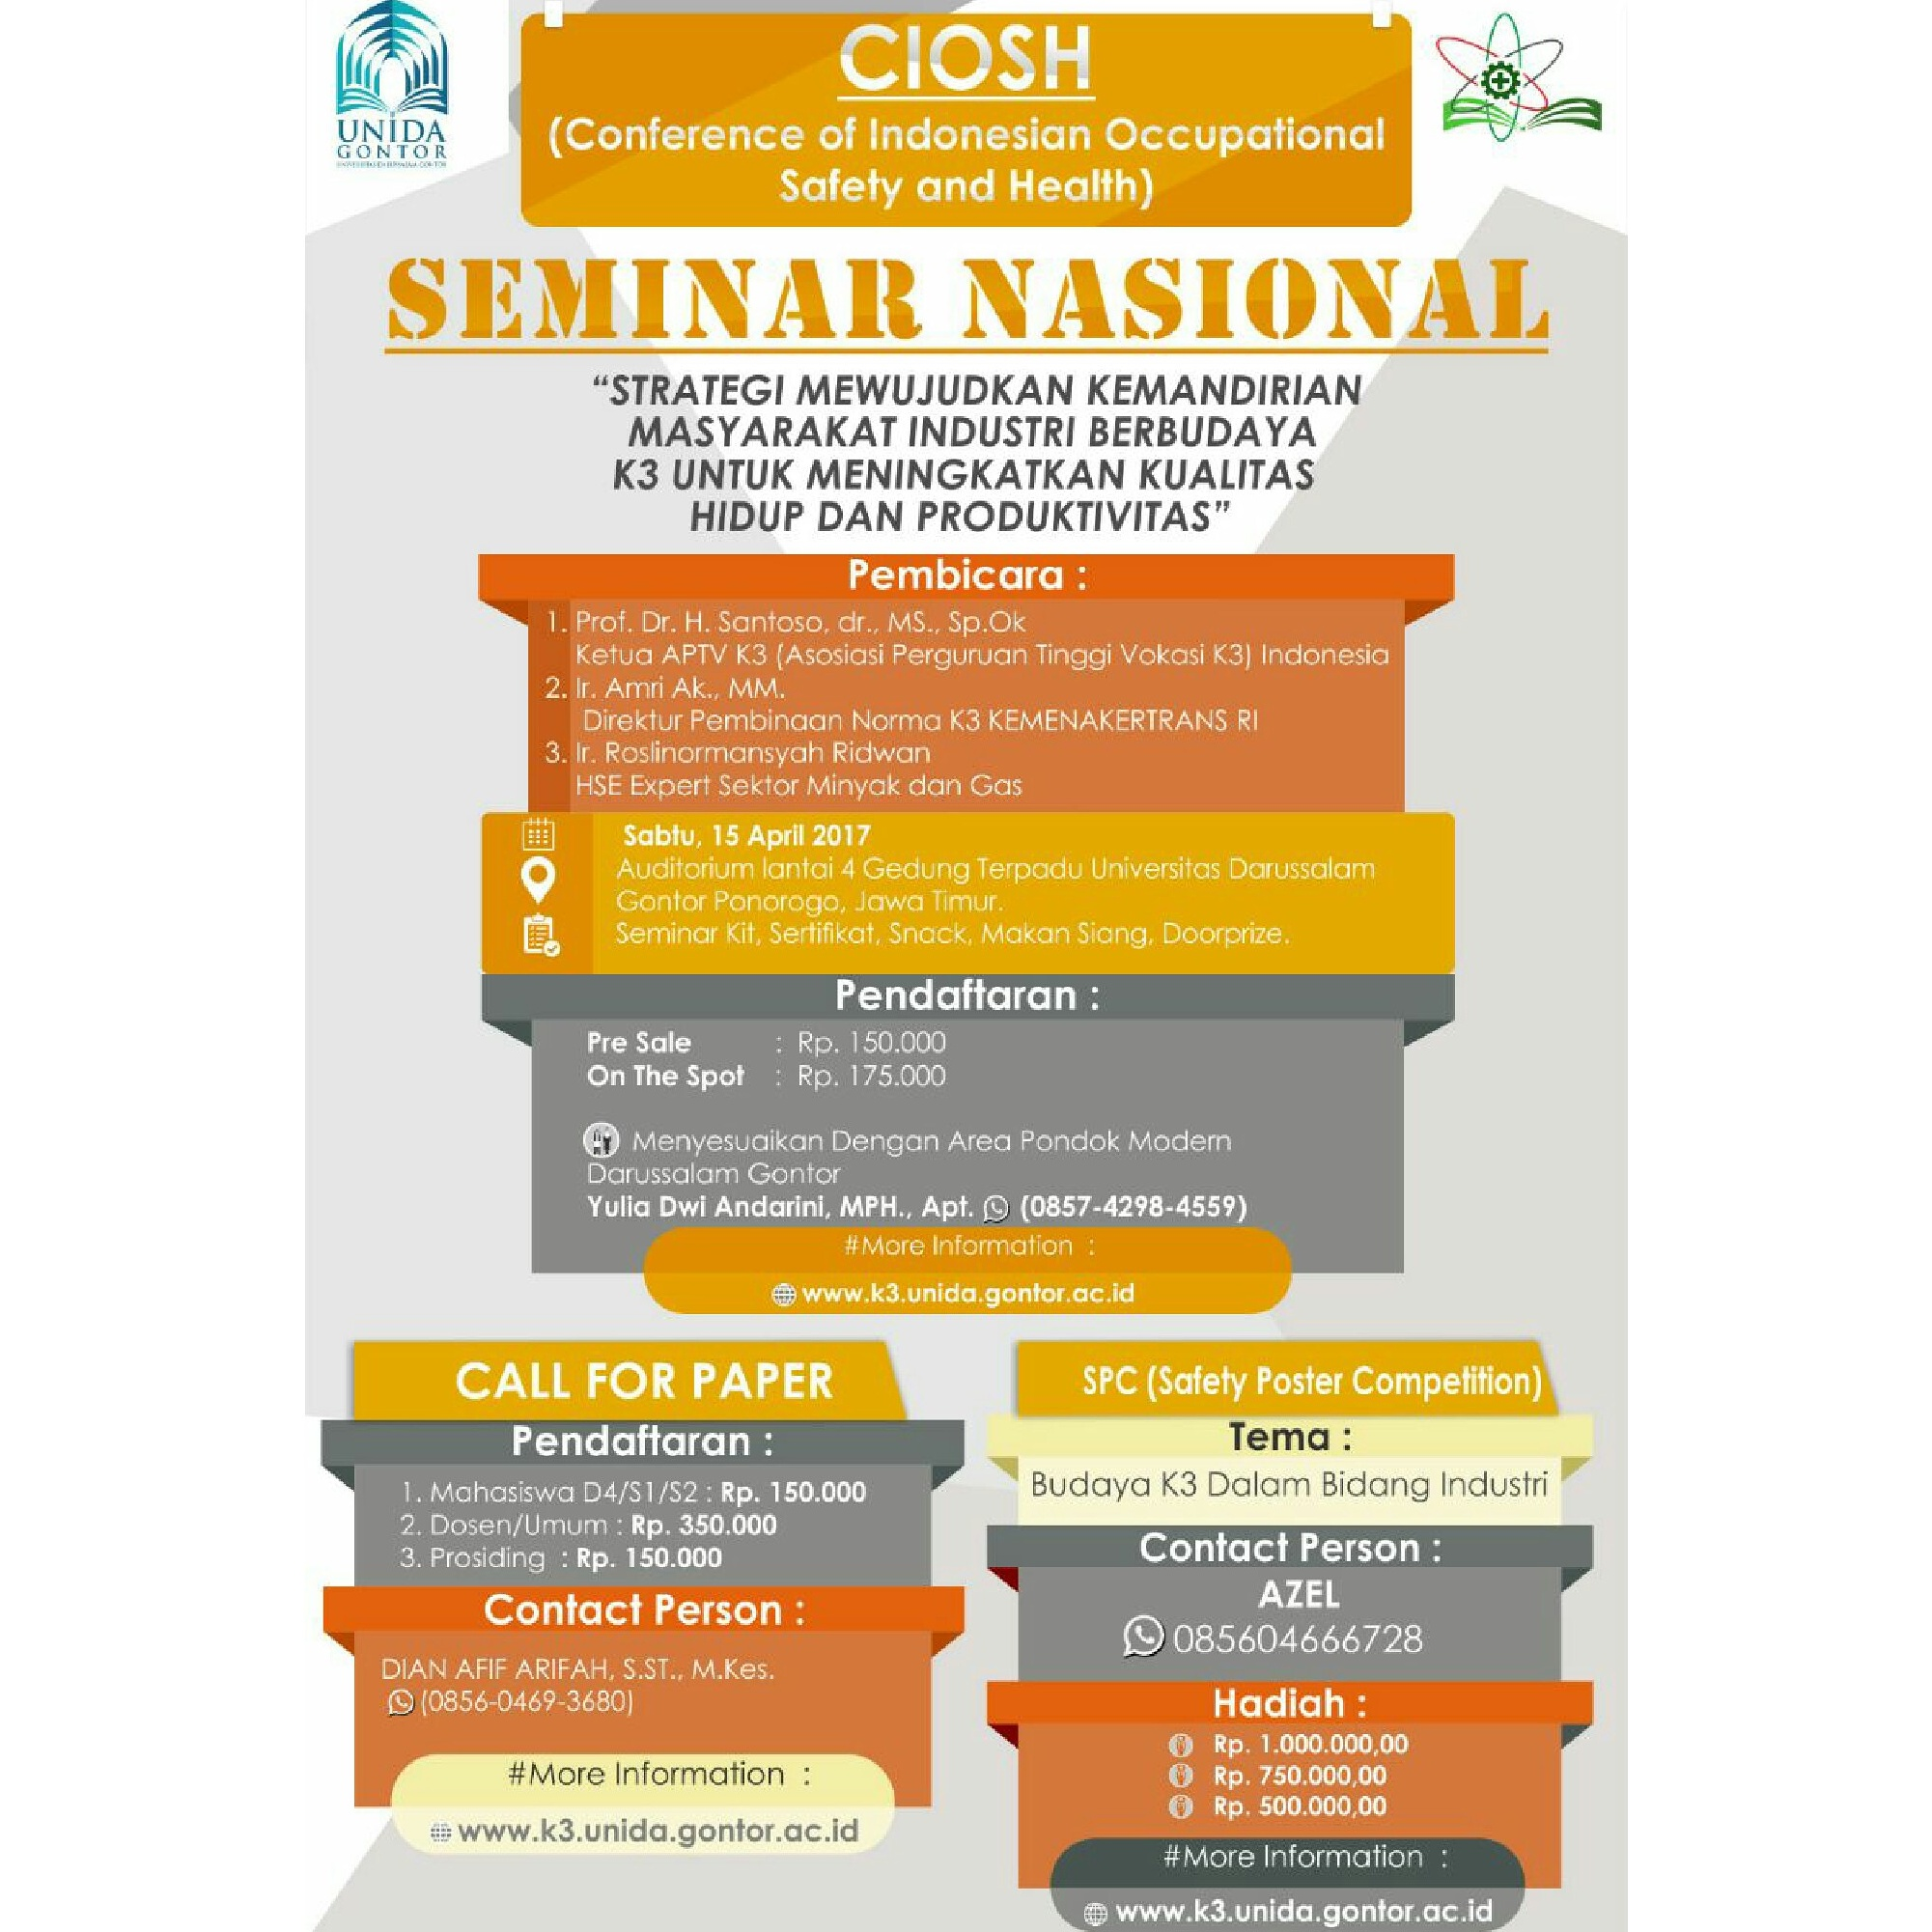 Conference of Indonesian Occupational Safety and Health (CIOSH)- SEMINAR NASIONAL